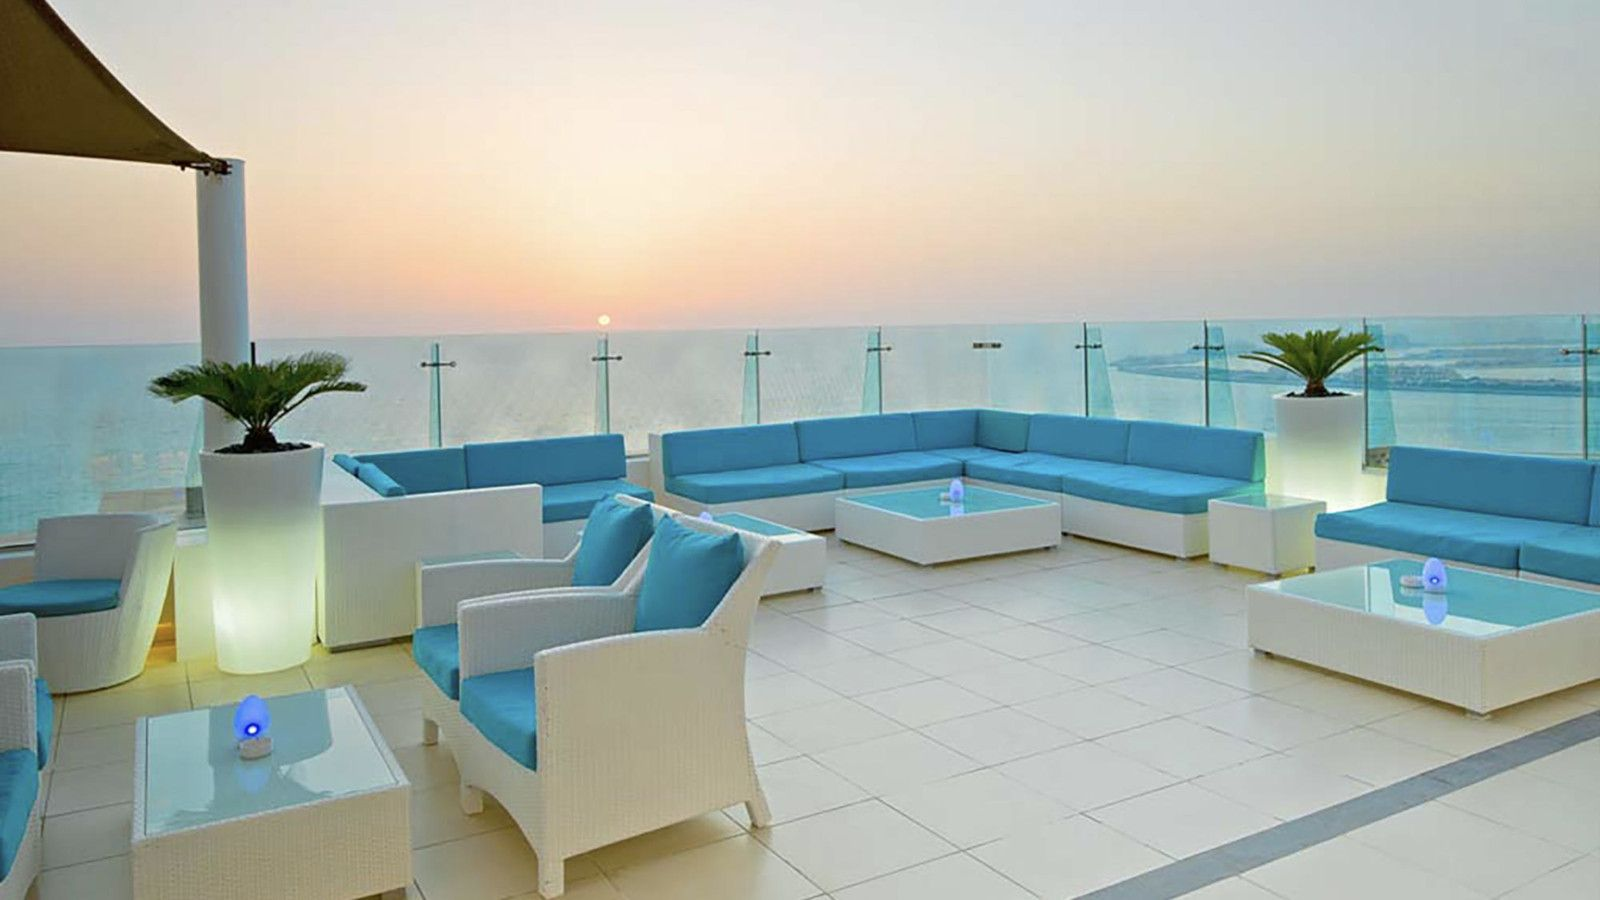 The Hilton's sky lounge is the perfect place for gay travellers to Dubai to enjoy a romantic cocktail.